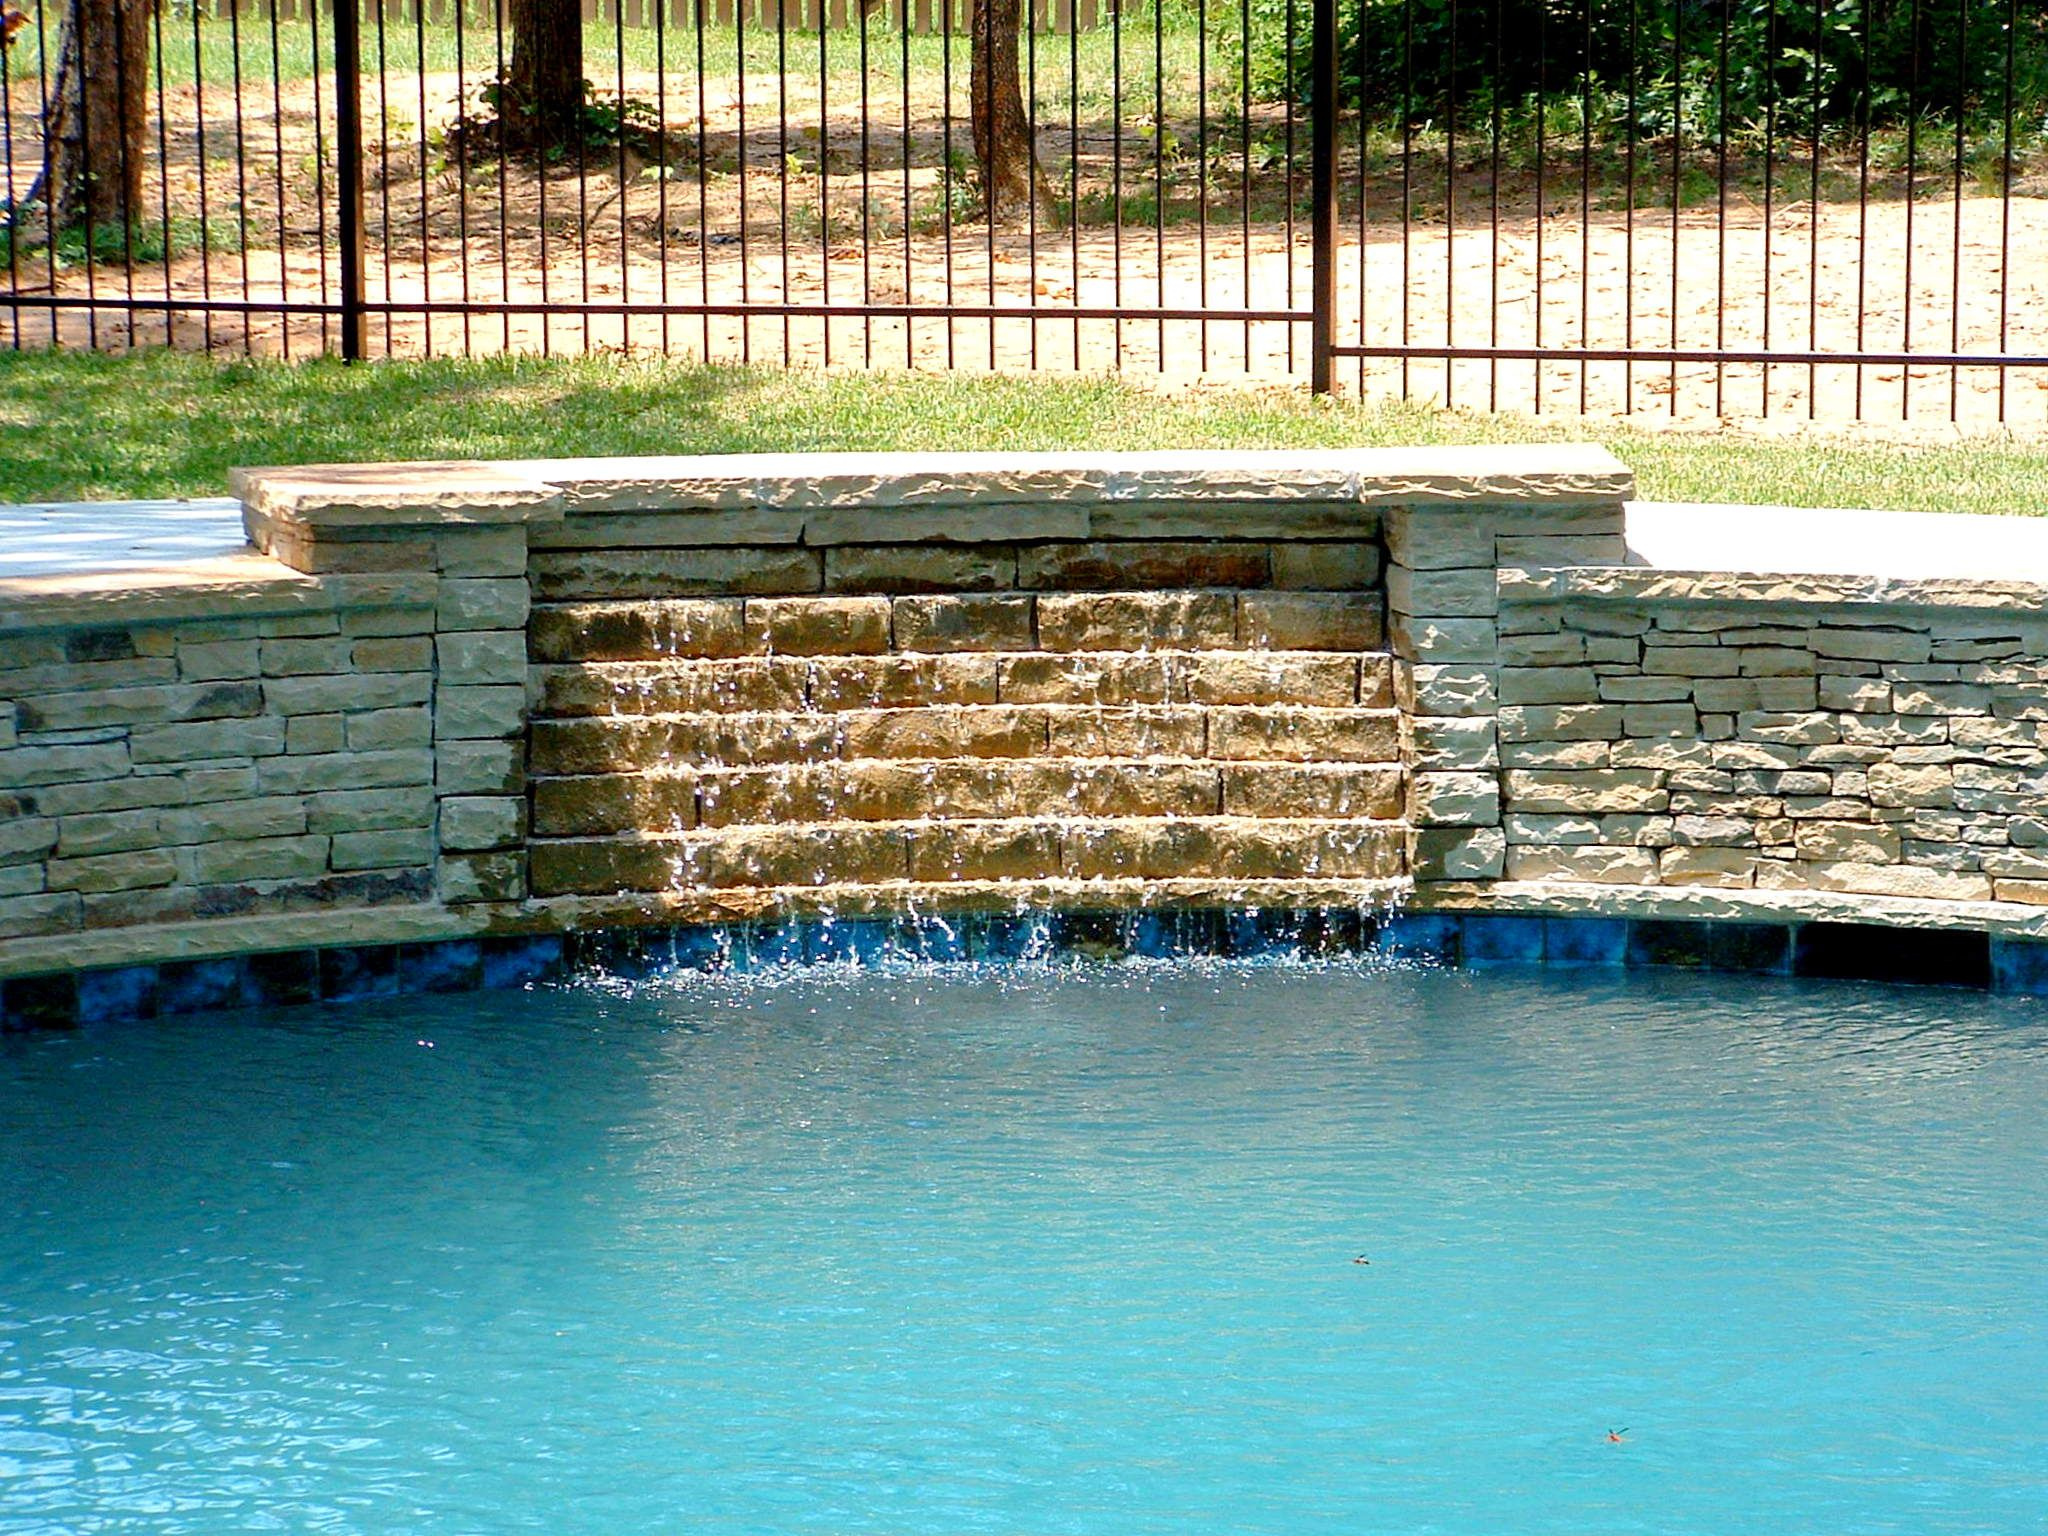 Pool Waterfalls Swimming Pool Drystack Stone Veneer Waterfall Keller Texas Backyard